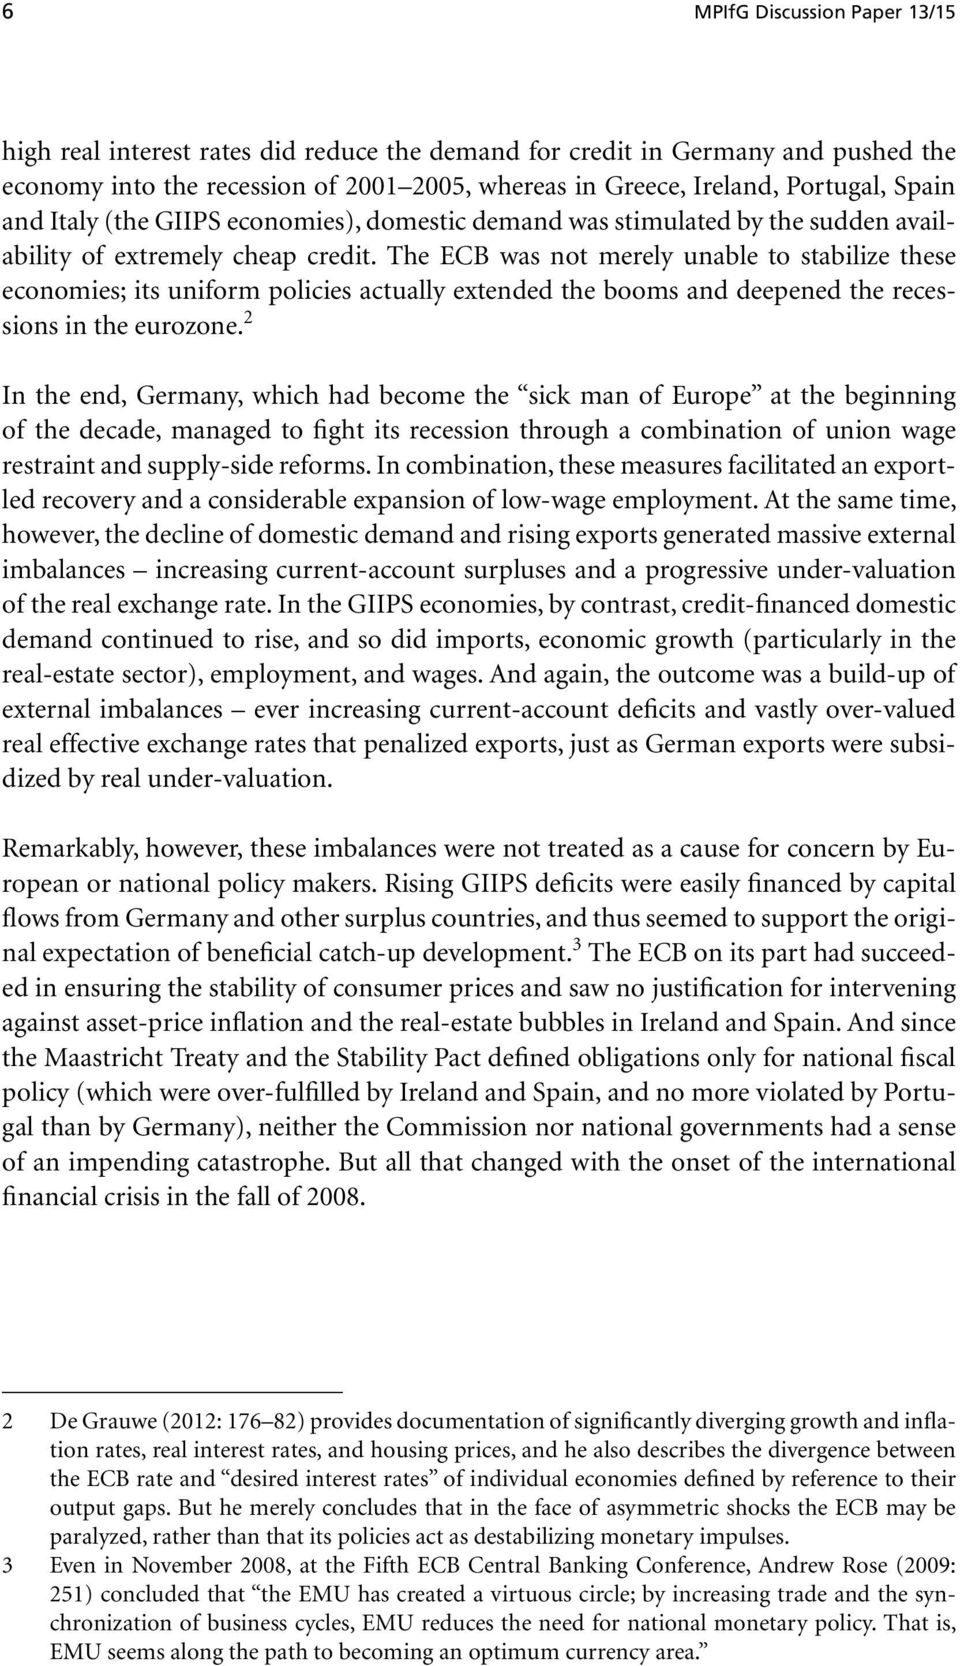 The ECB was not merely unable to stabilize these economies; its uniform policies actually extended the booms and deepened the recessions in the eurozone.